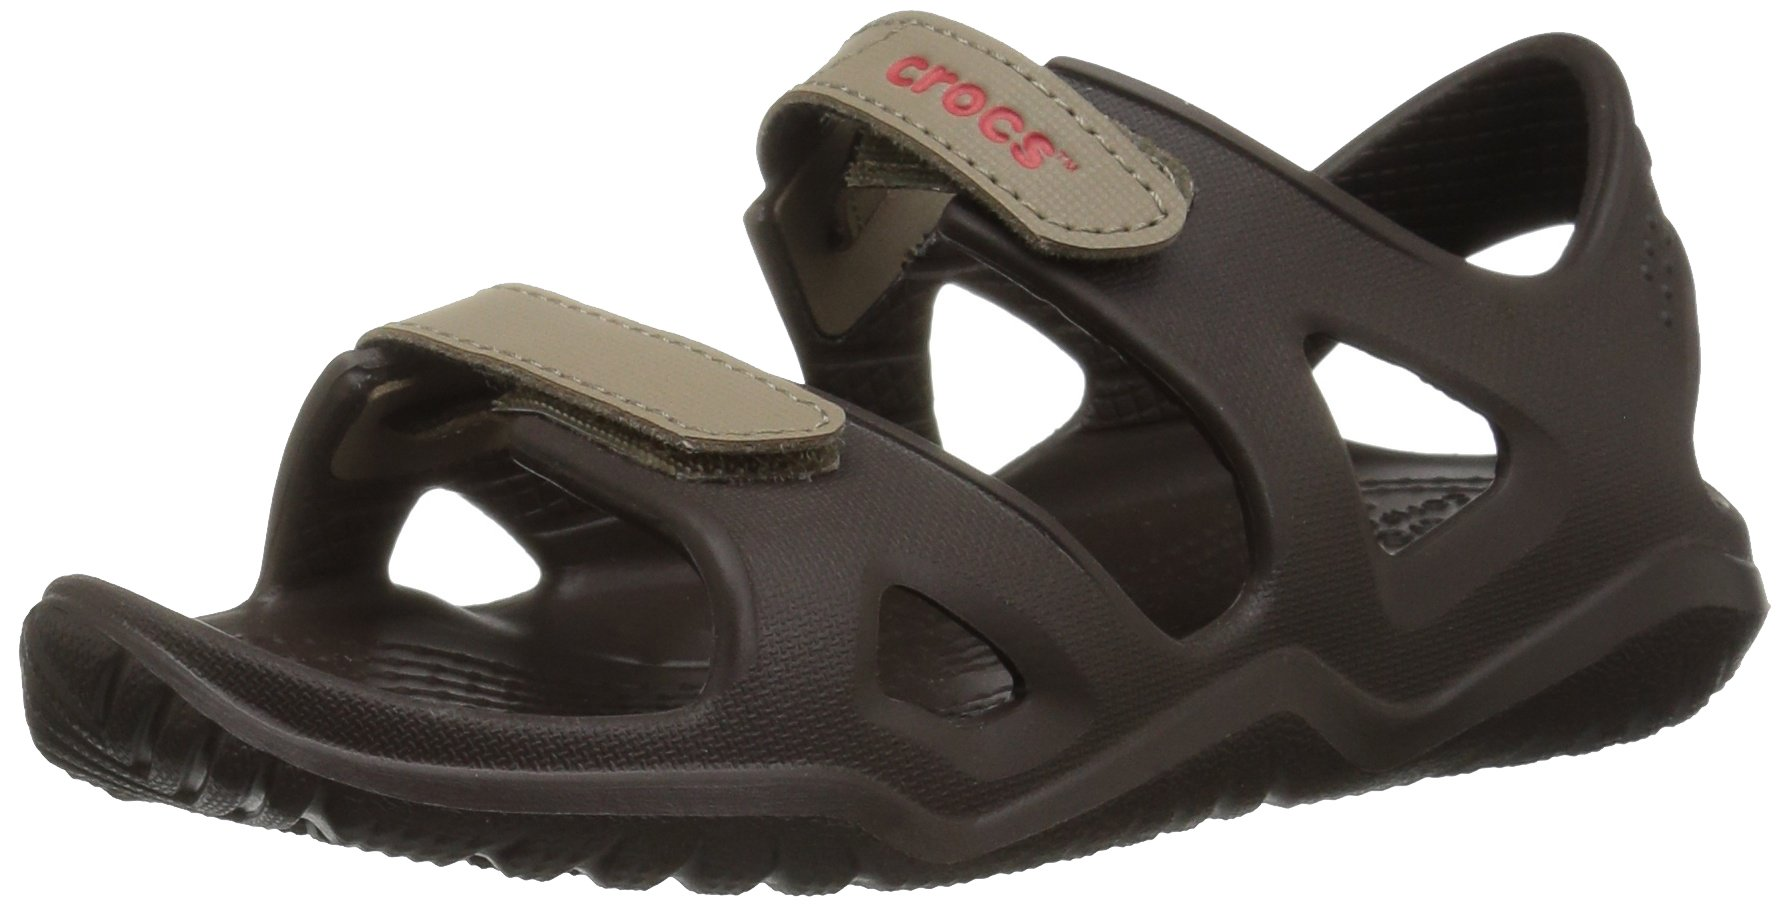 Crocs Unisex-Kids Swiftwater River K Flat Sandal, Espresso/Khaki, 13 M US Little Kid